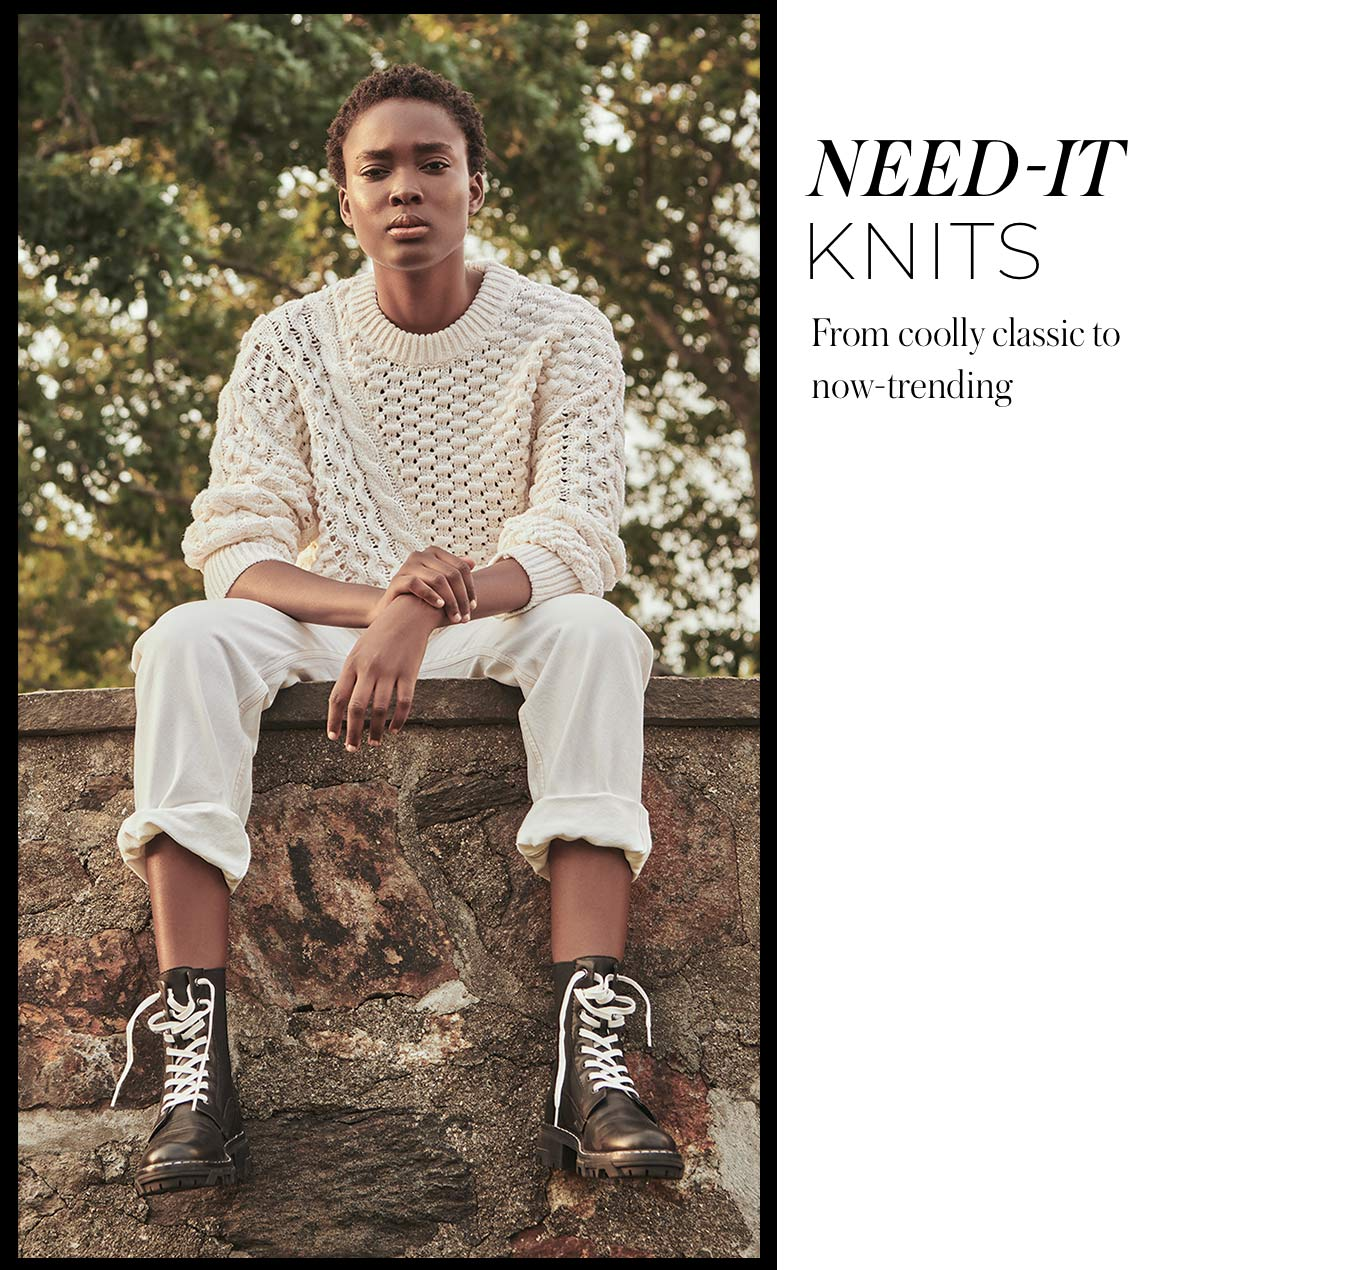 Need-It Knits From coolly classic to now-trending